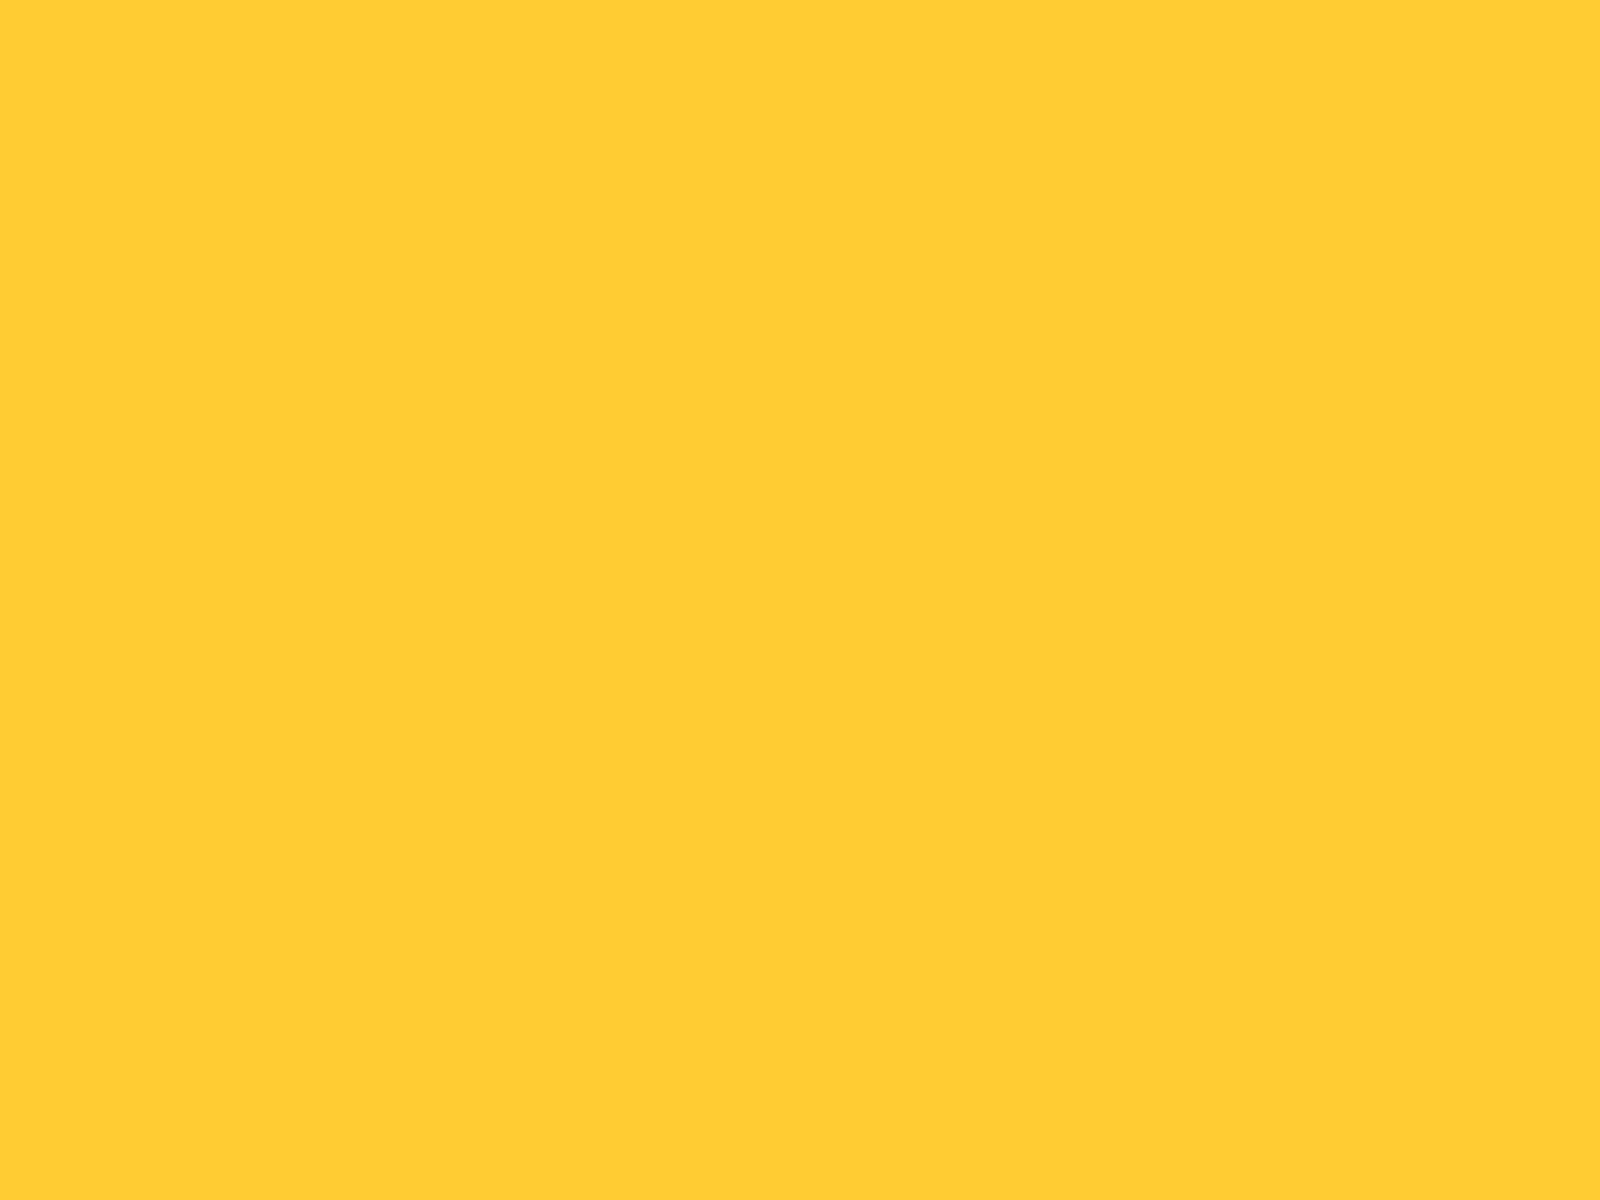 1600x1200 Sunglow Solid Color Background